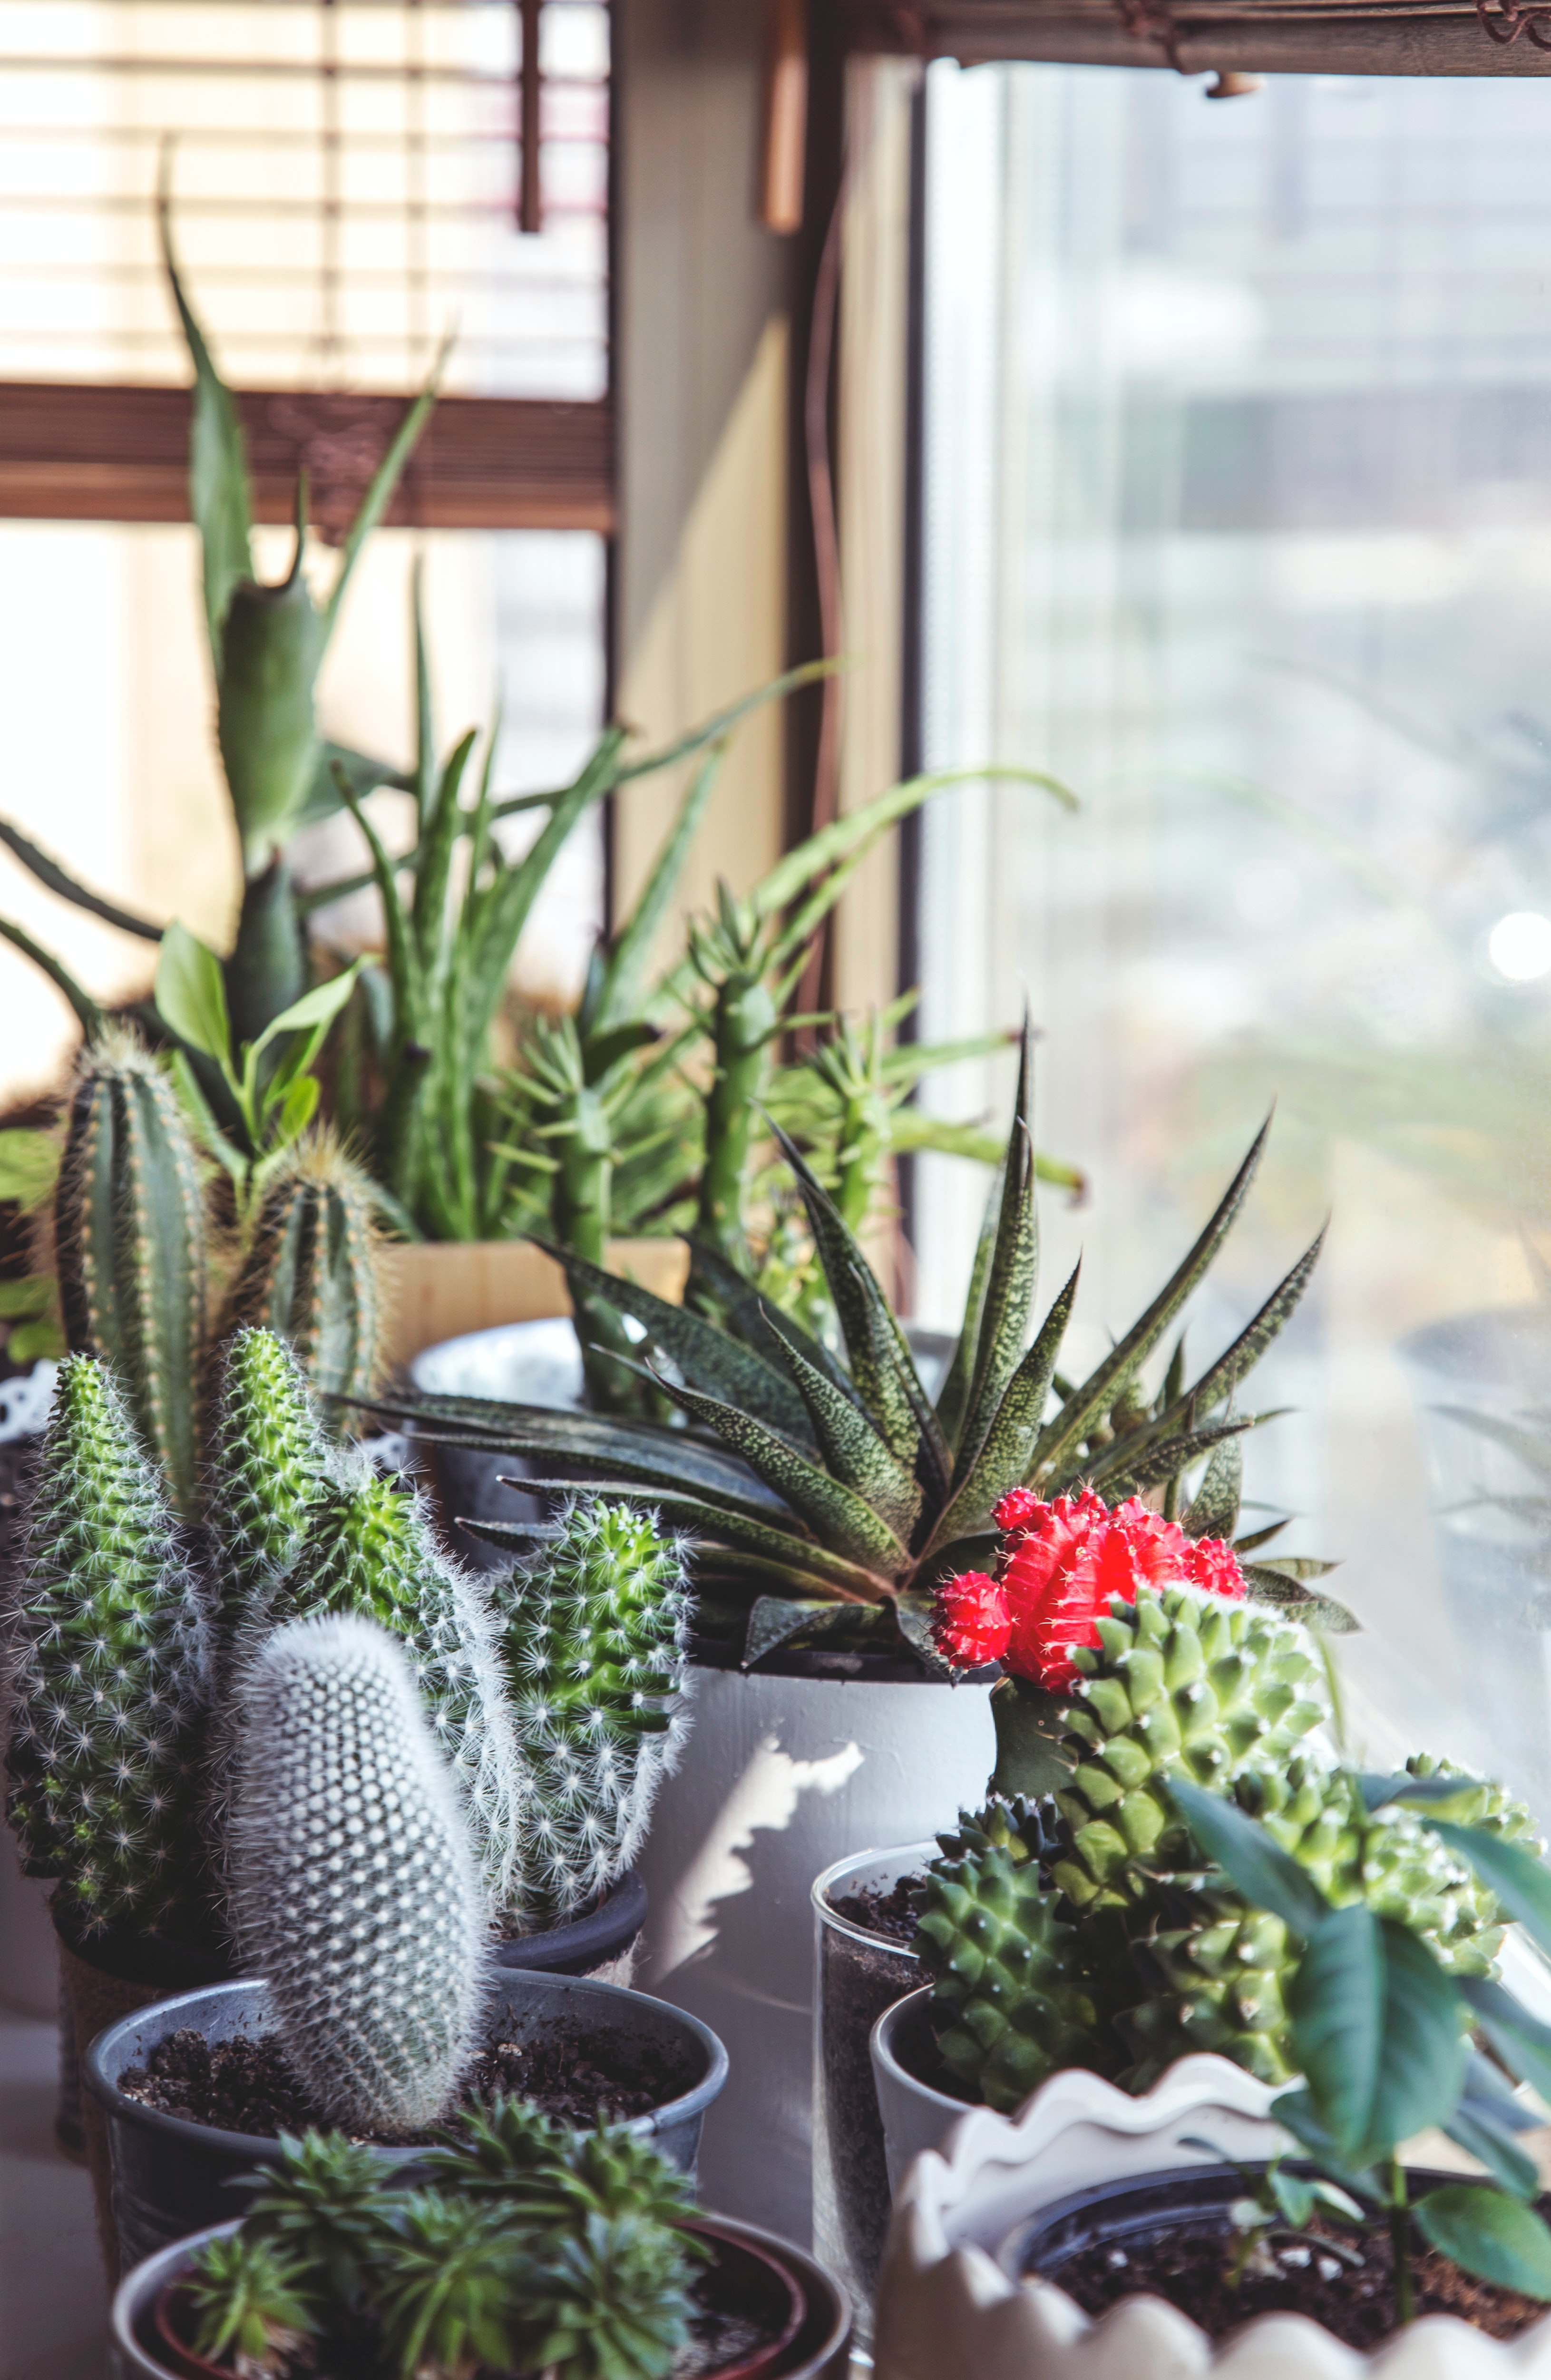 Different varieties of cacti arranged on a window sill